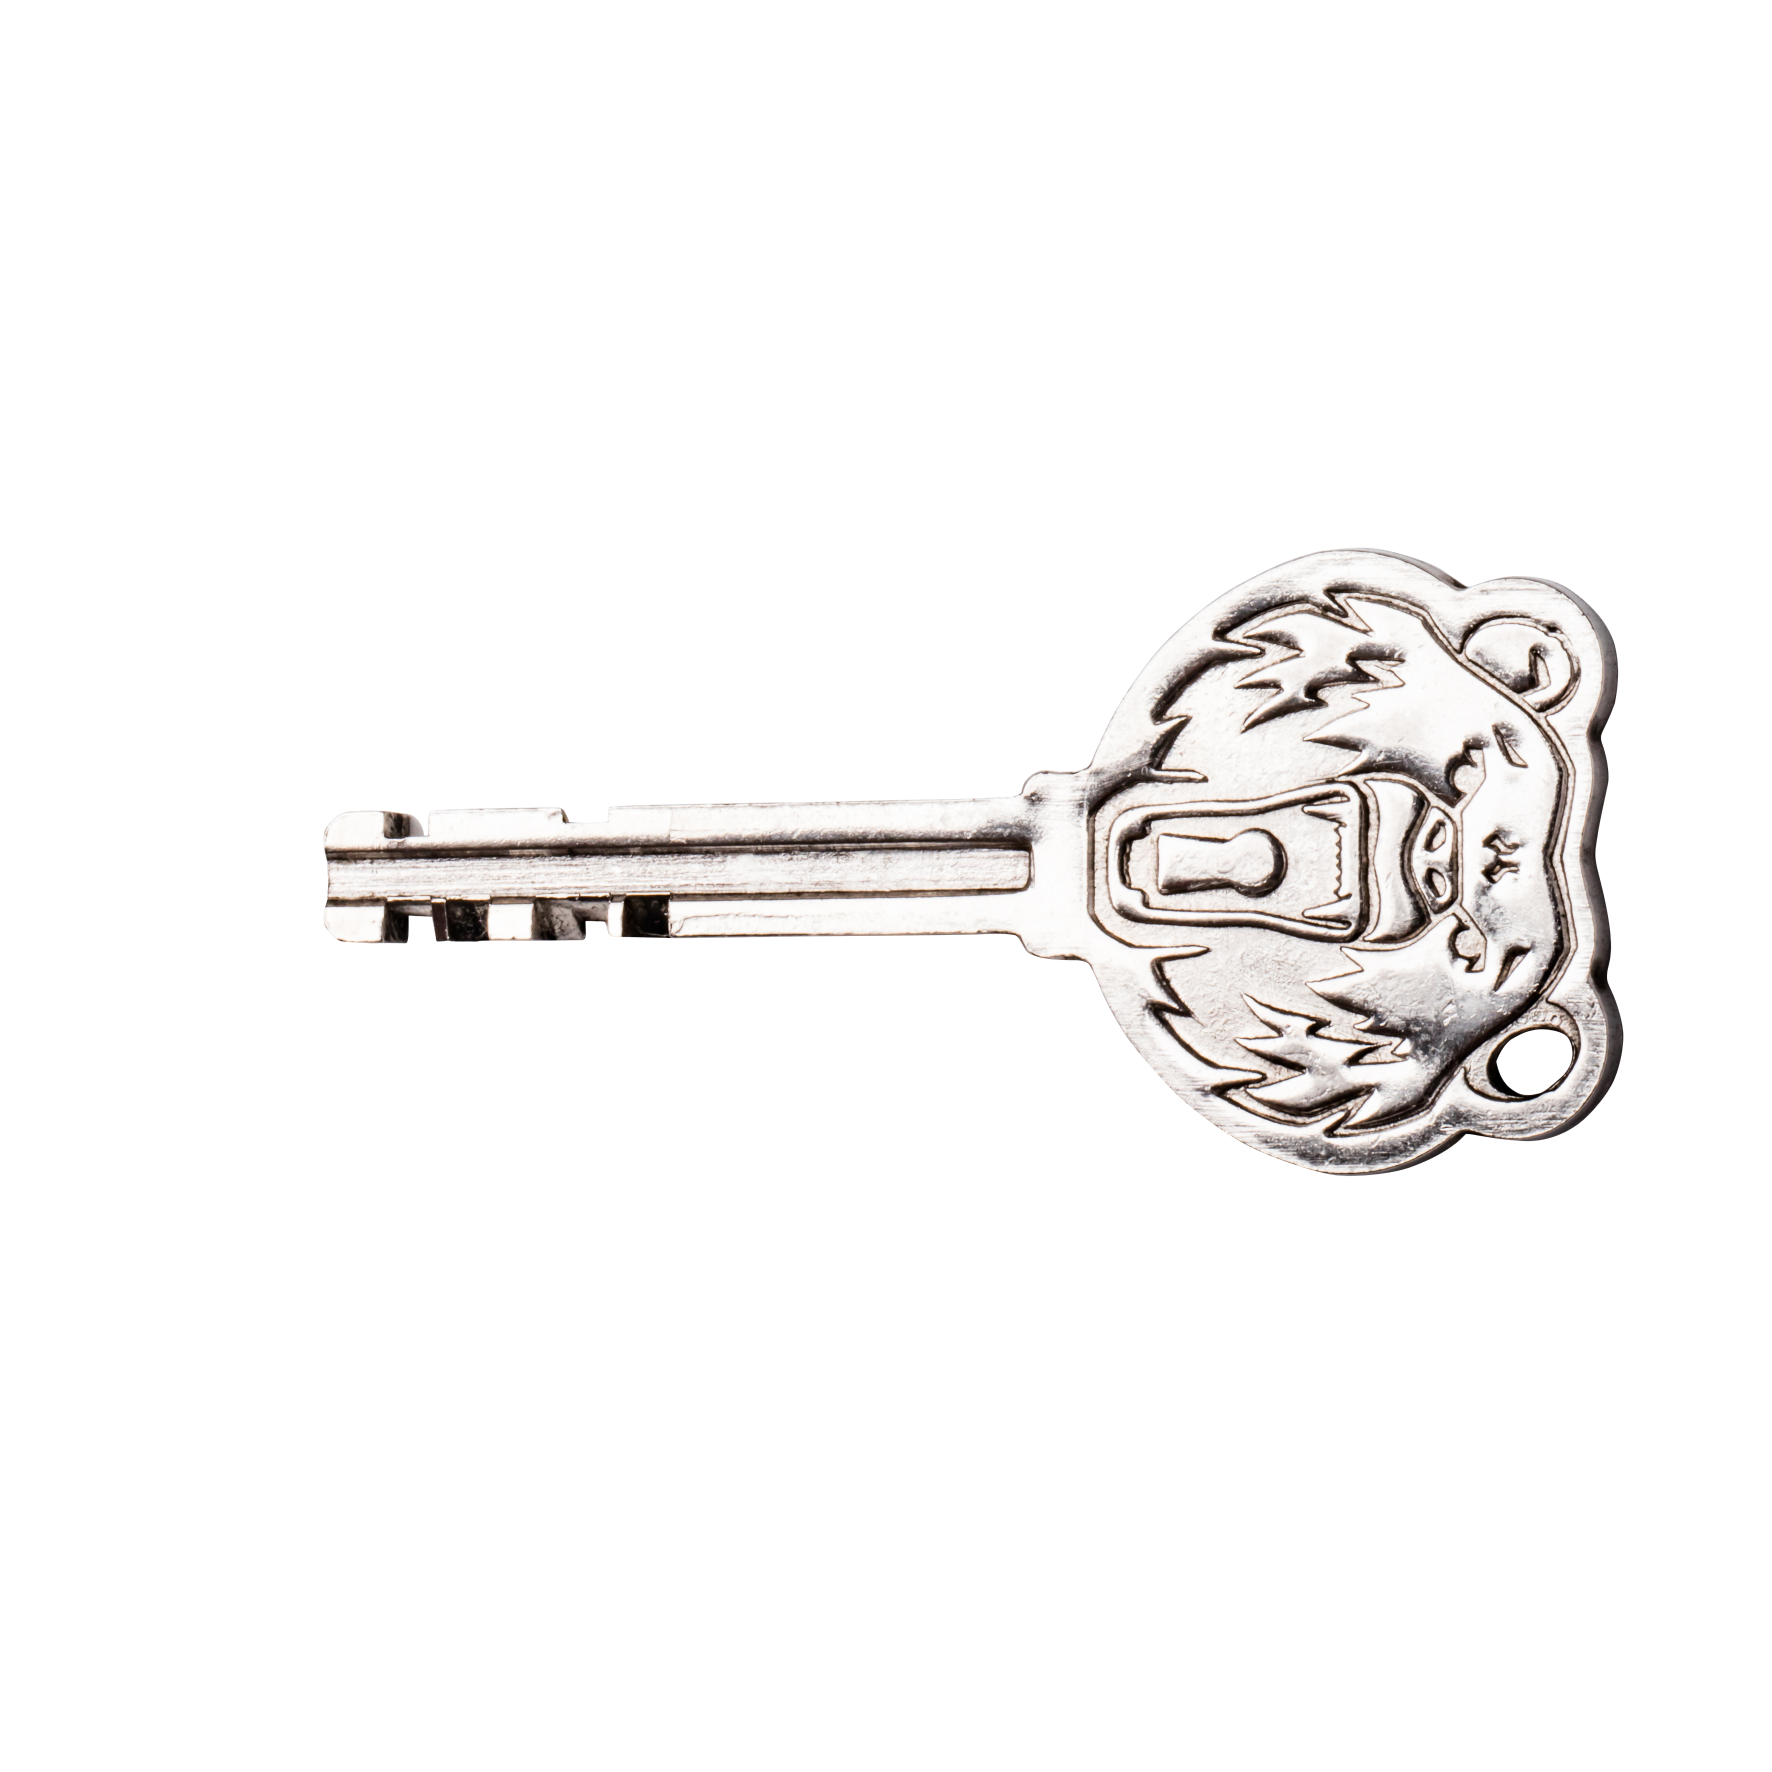 Powerlock Stainless Steel keys